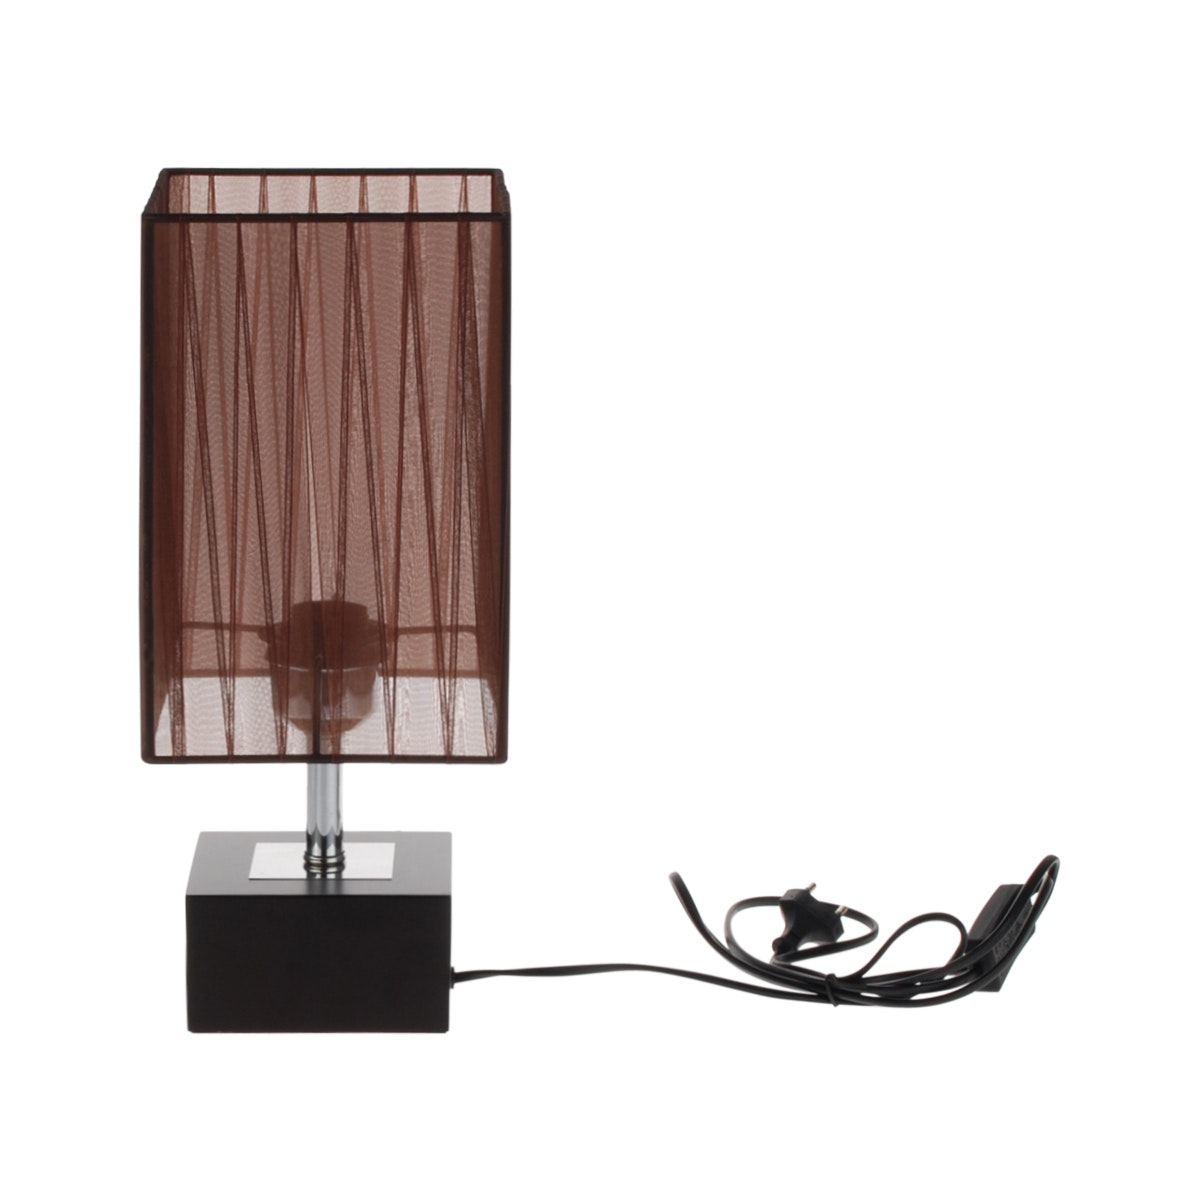 JYSK Table Lamp,220V,Coffee 17309-A